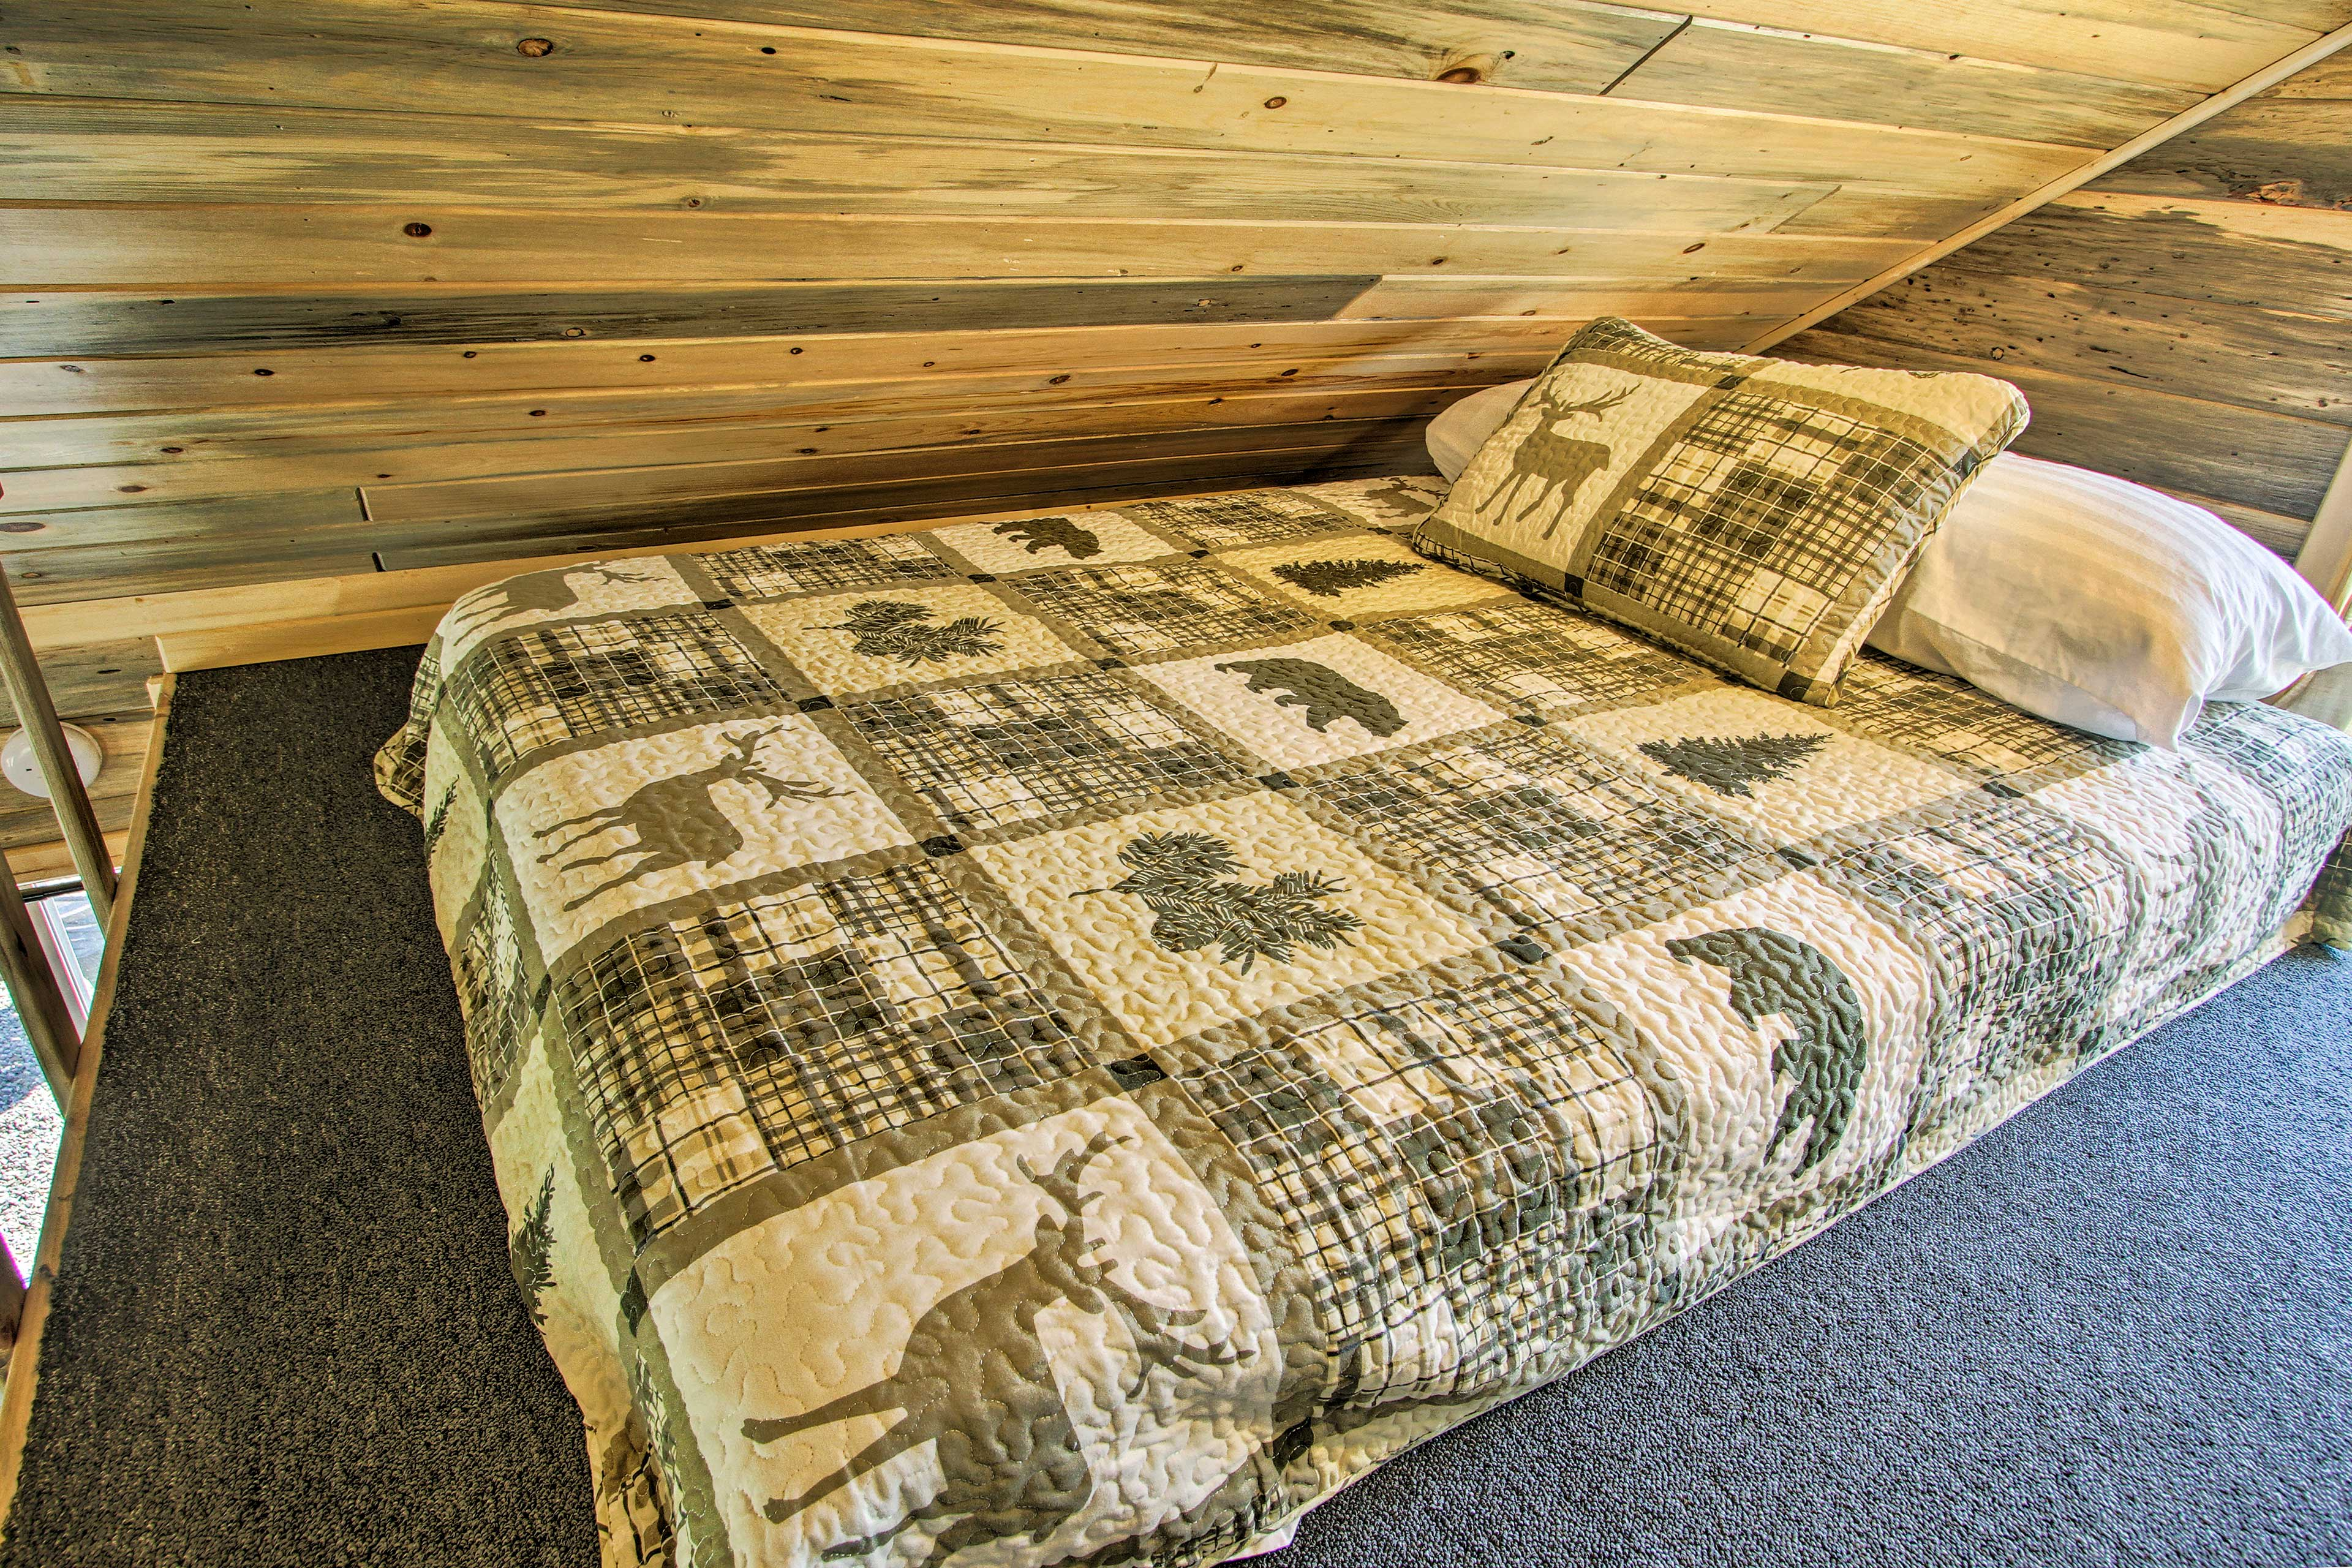 Two guests can sleep on the full bed, with one on the twin bed.